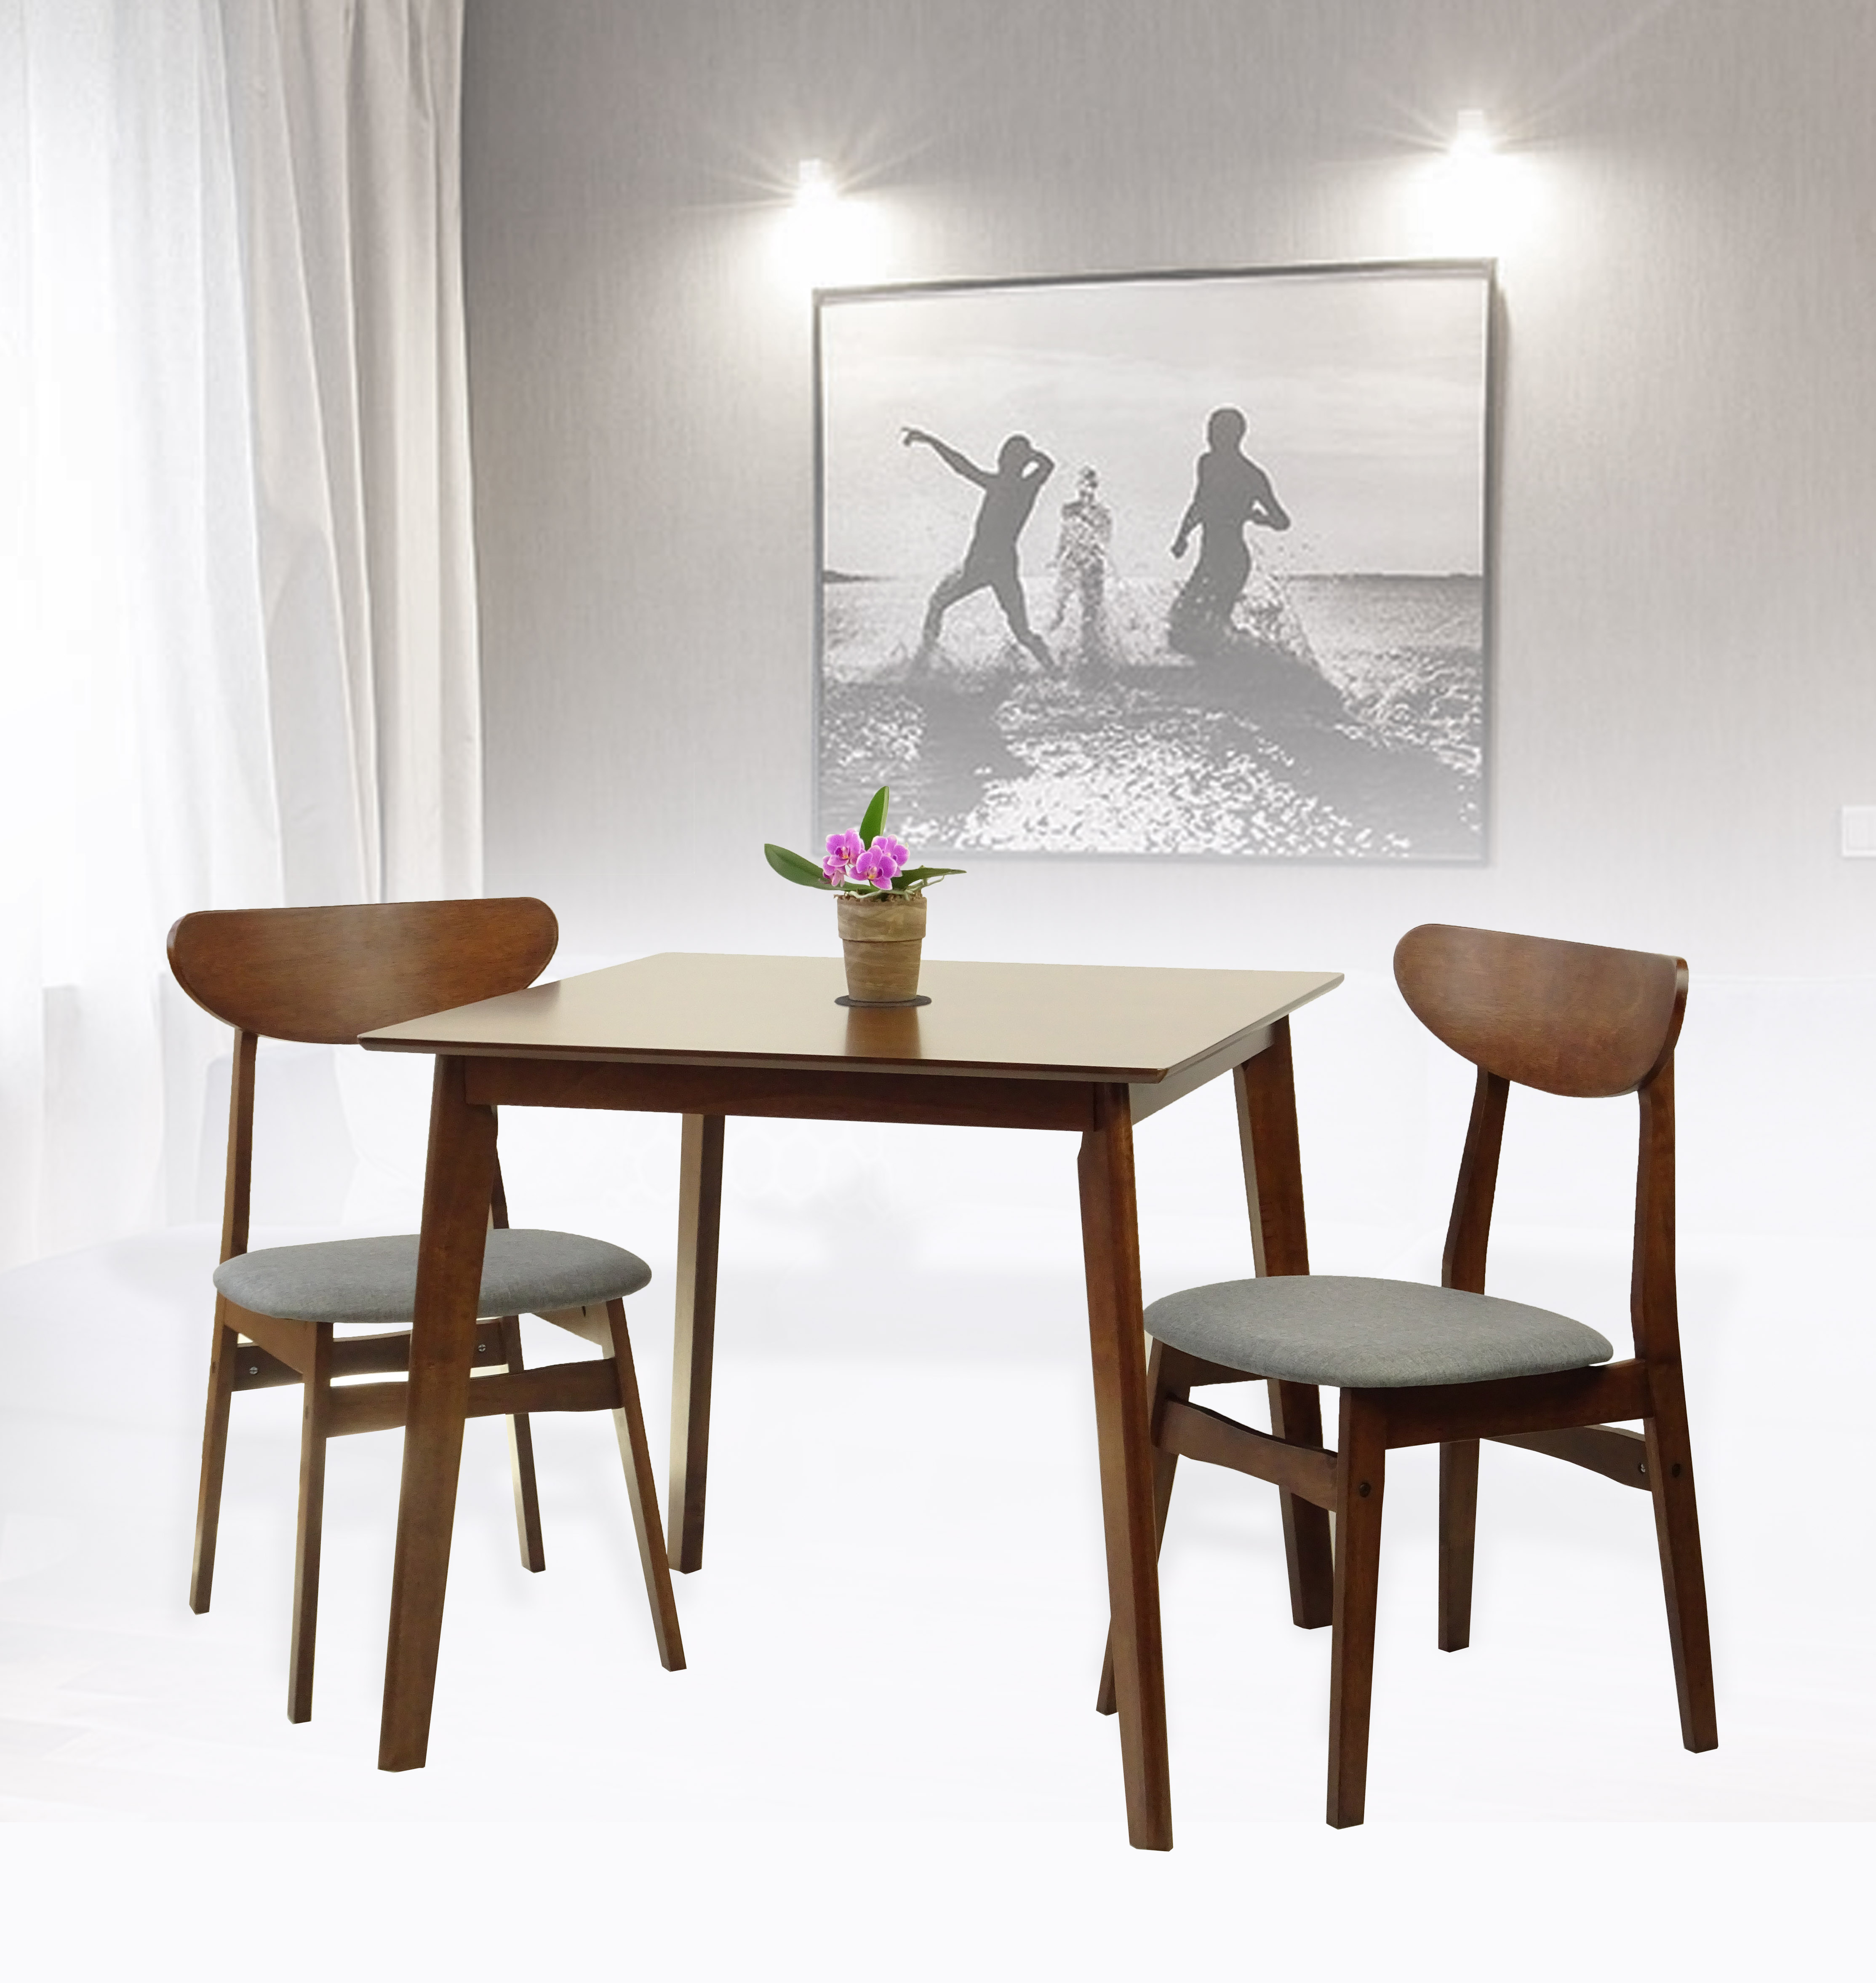 Rattan Kitchen Table: Buy Rattan Wicker Furniture Set Of 3 Dining Kitchen Square